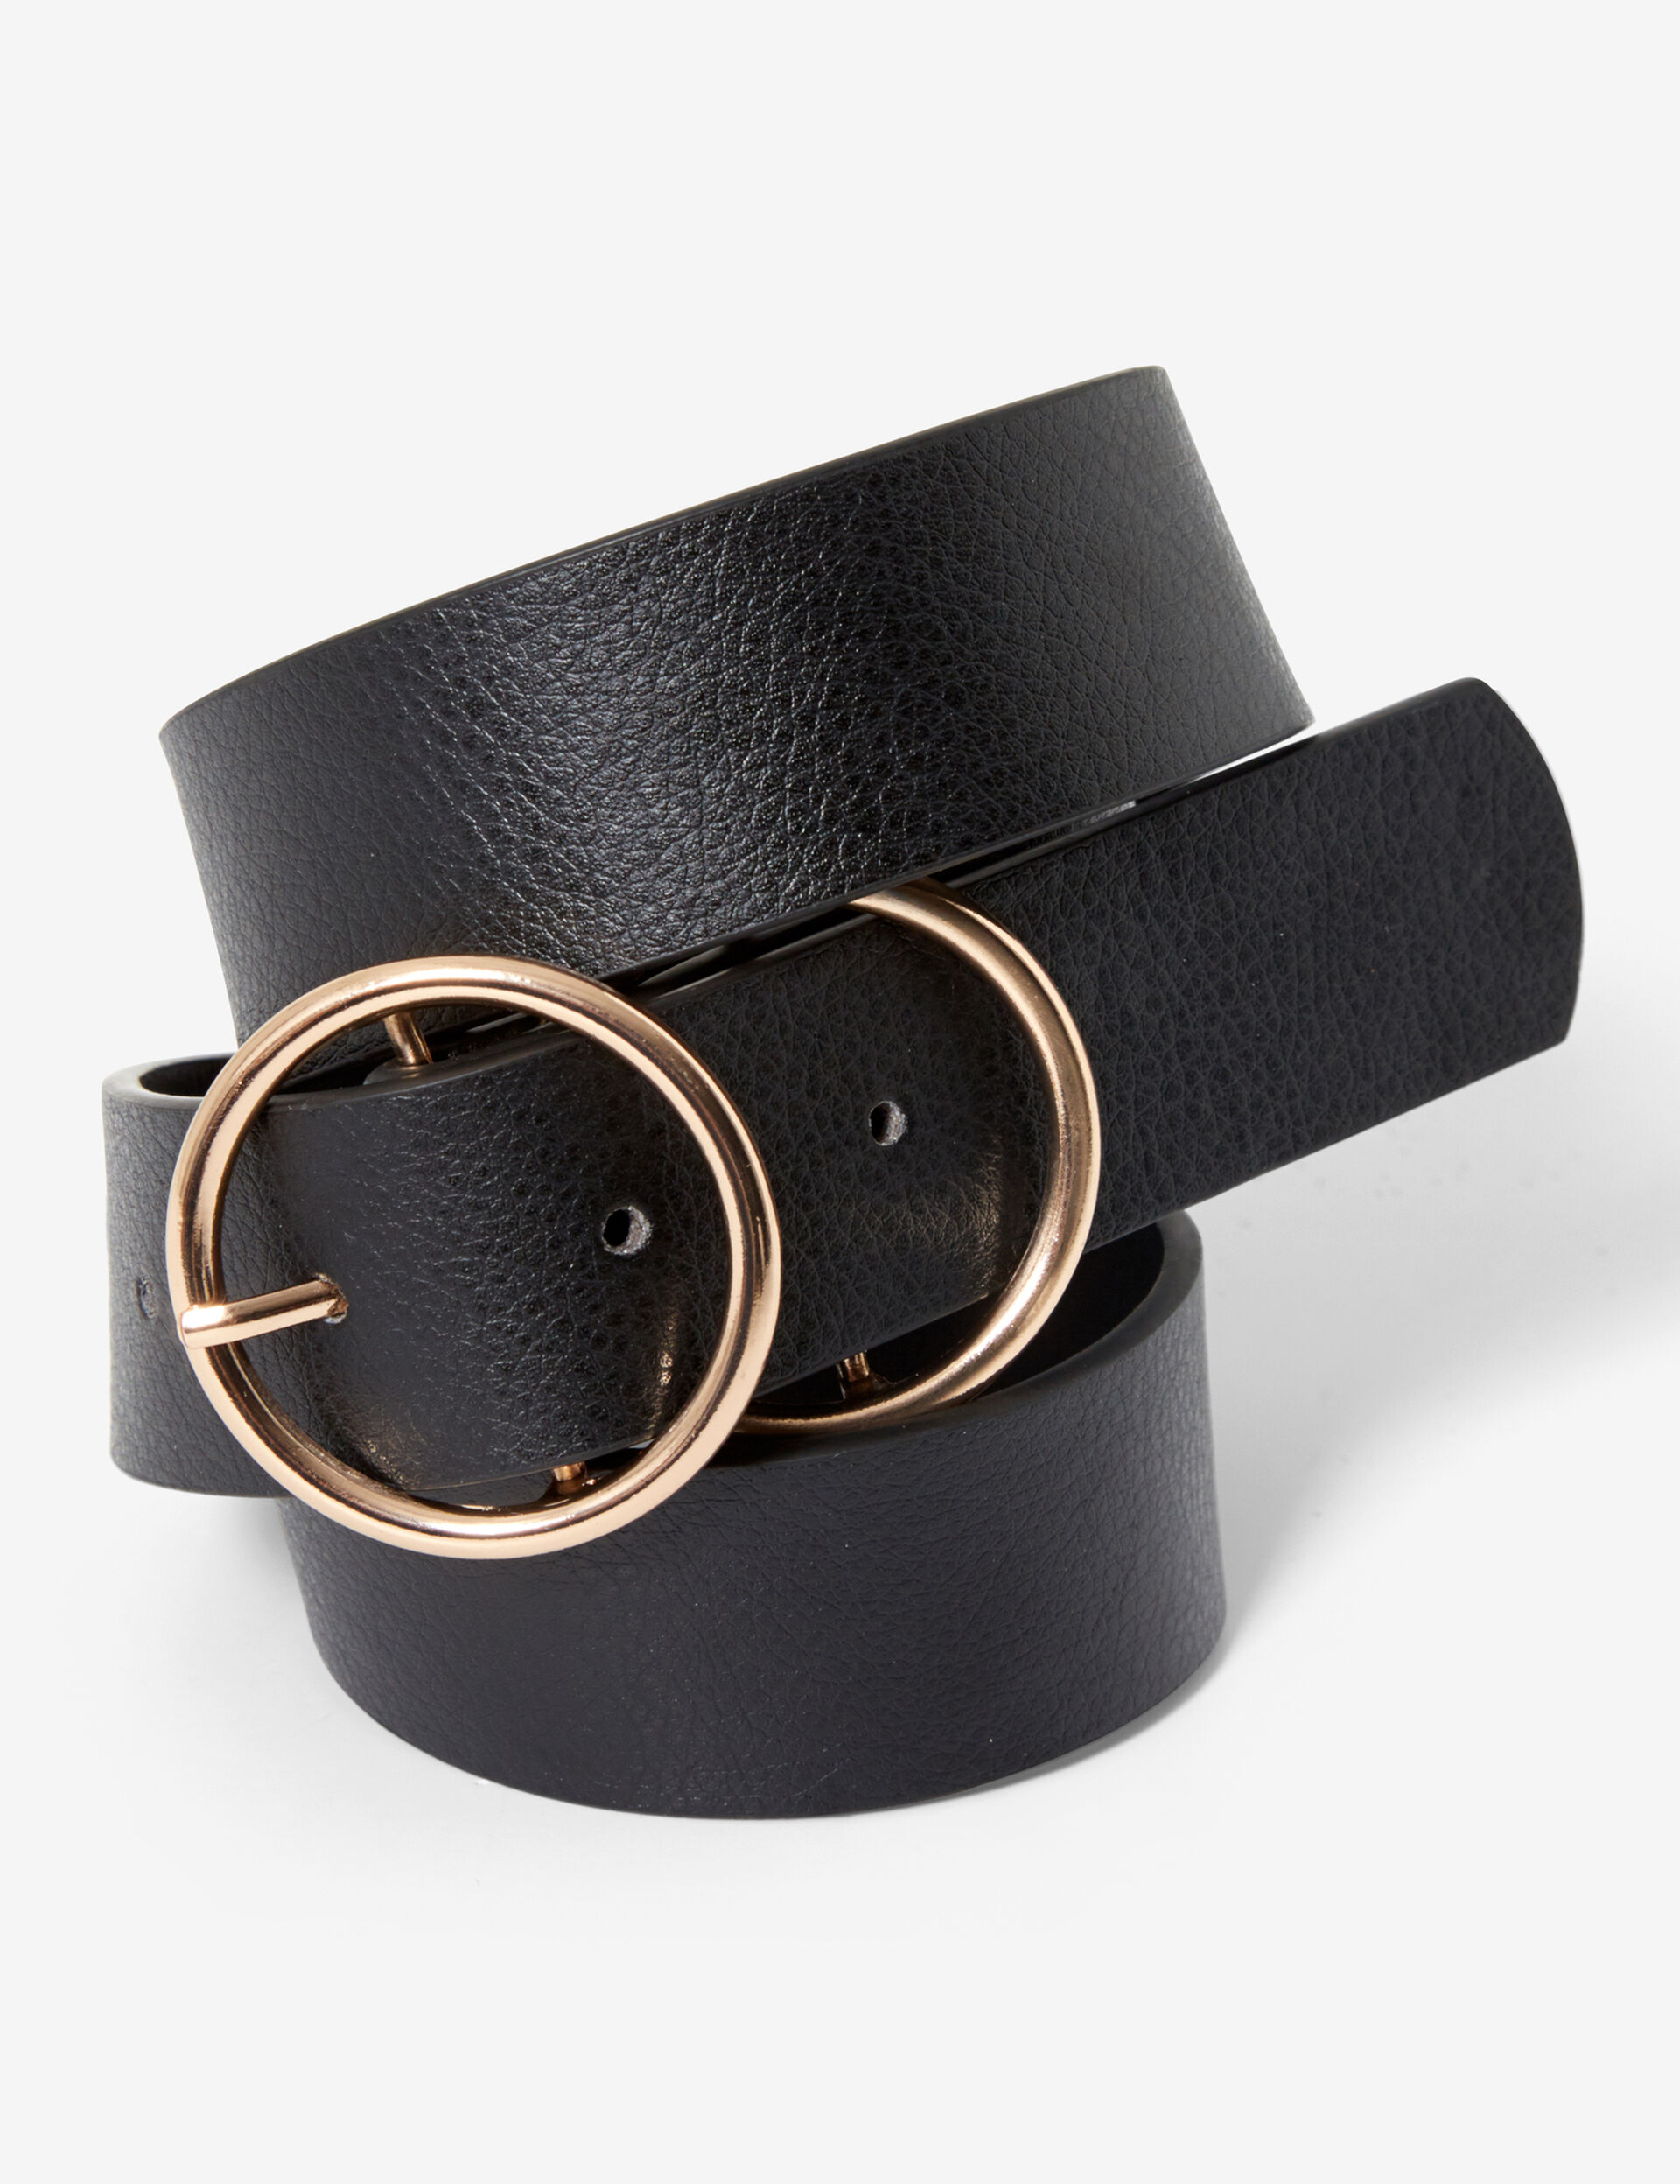 Double-buckled belt